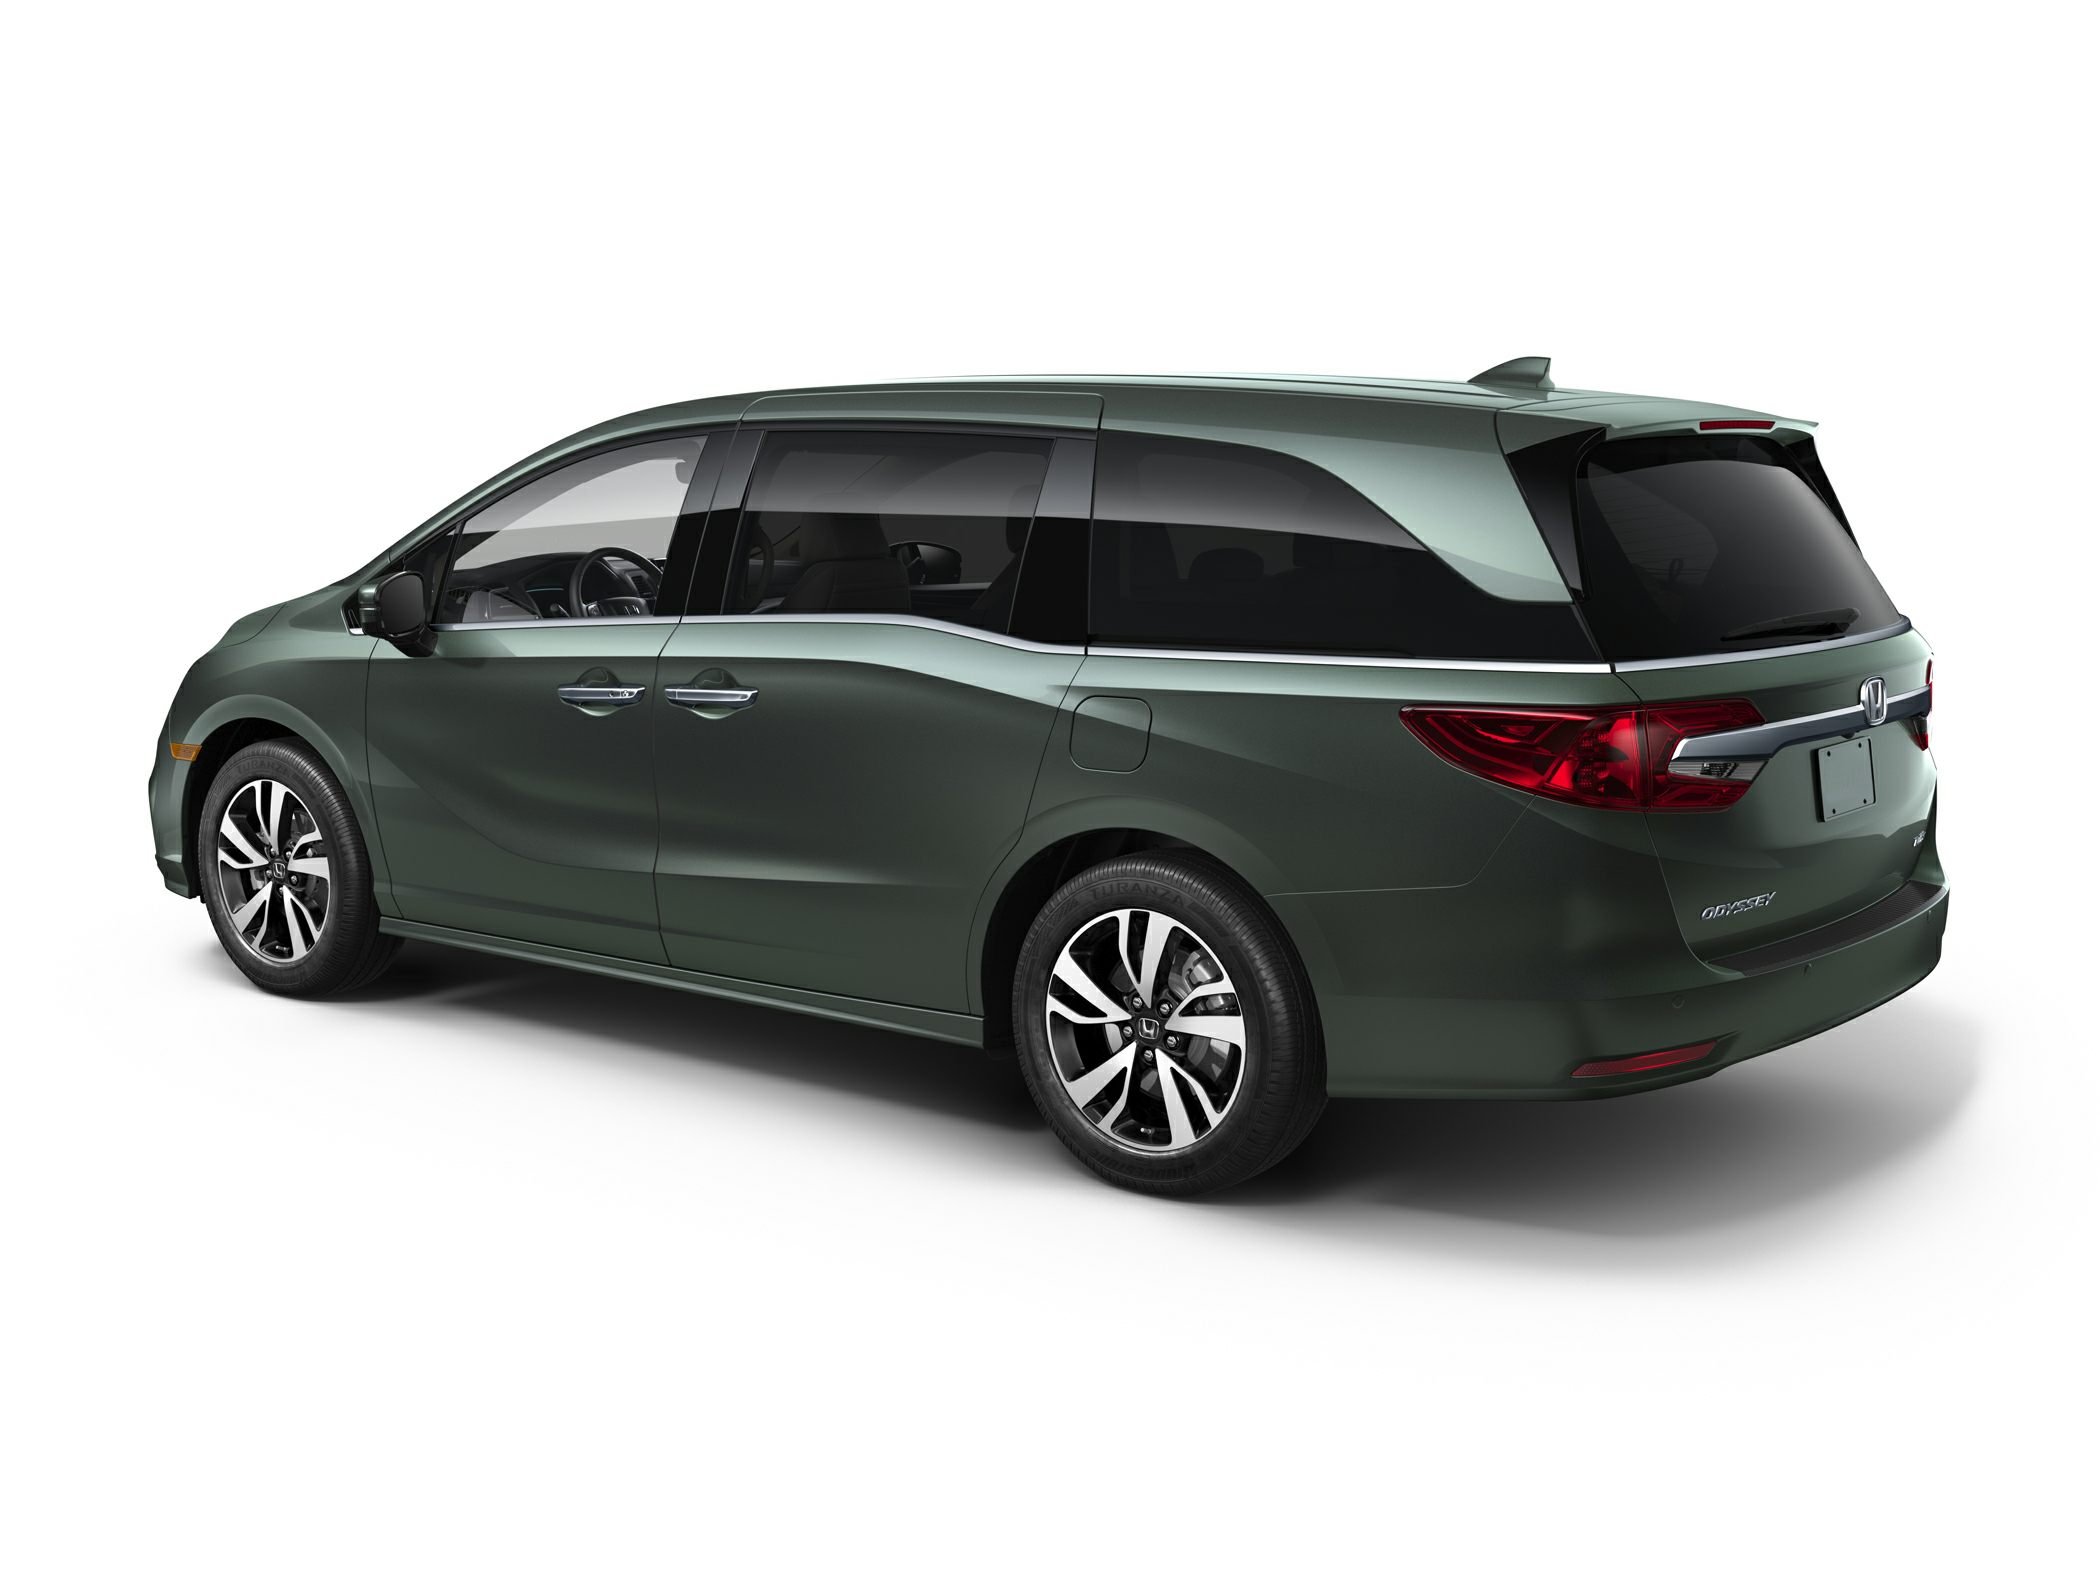 epic road reports honda minivan trips van odyssey for consumer review long designed drive the first connected is haul comfort vs minivans